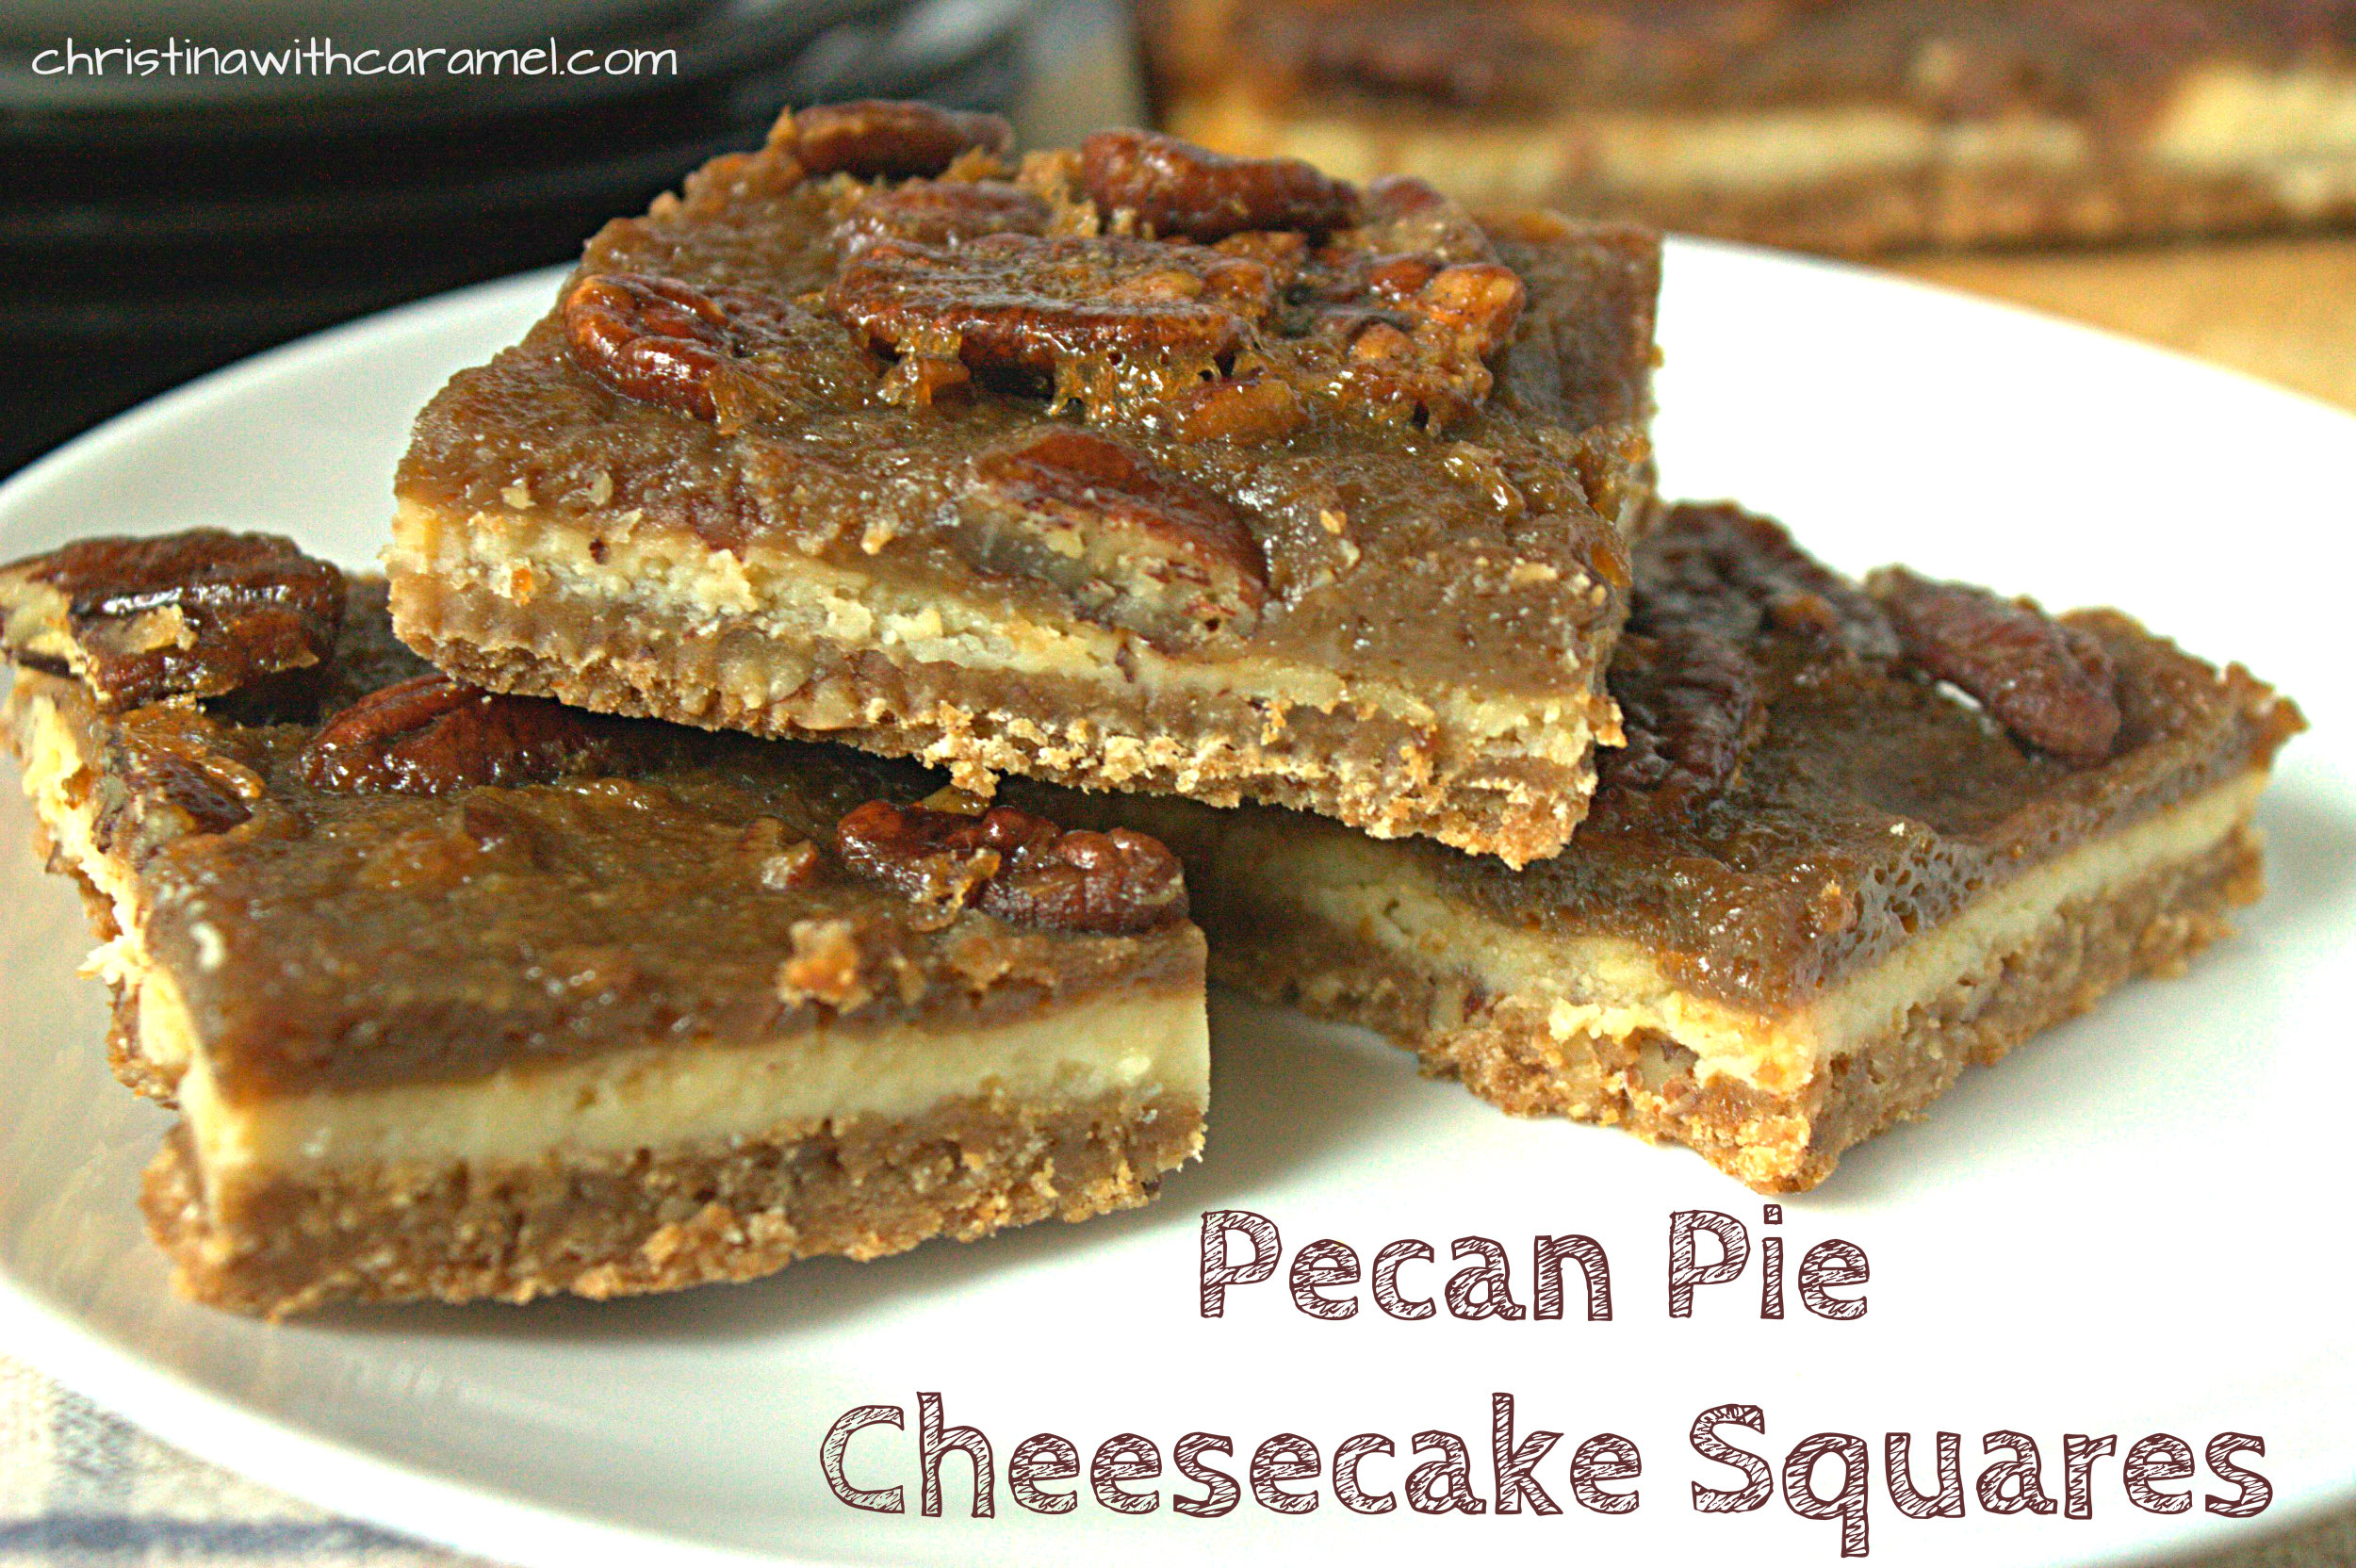 ... cheesecake and sweet pecan pie come together in one amazing cheesecake